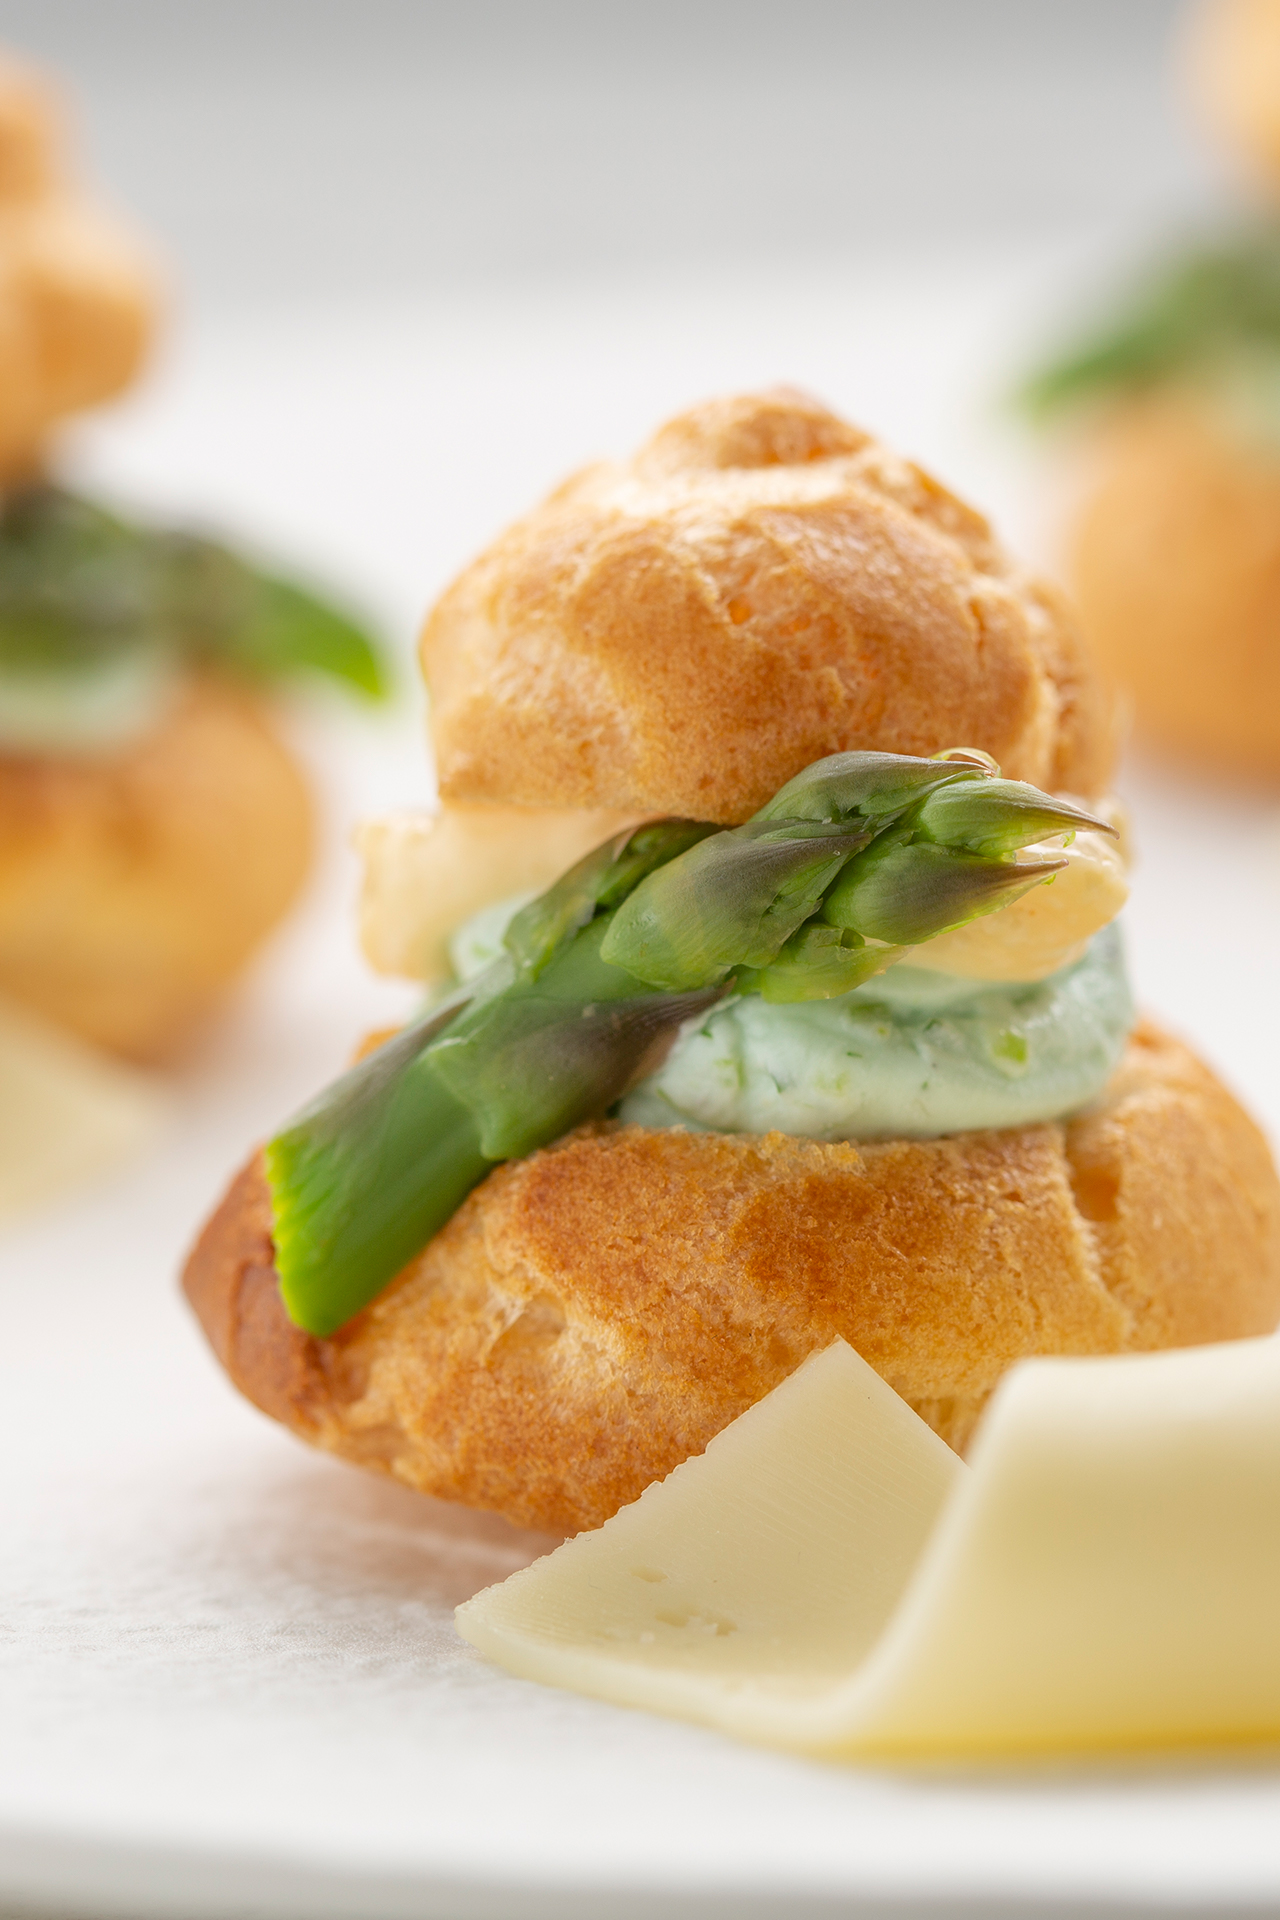 Asparagus and Normantal cheese religieuse